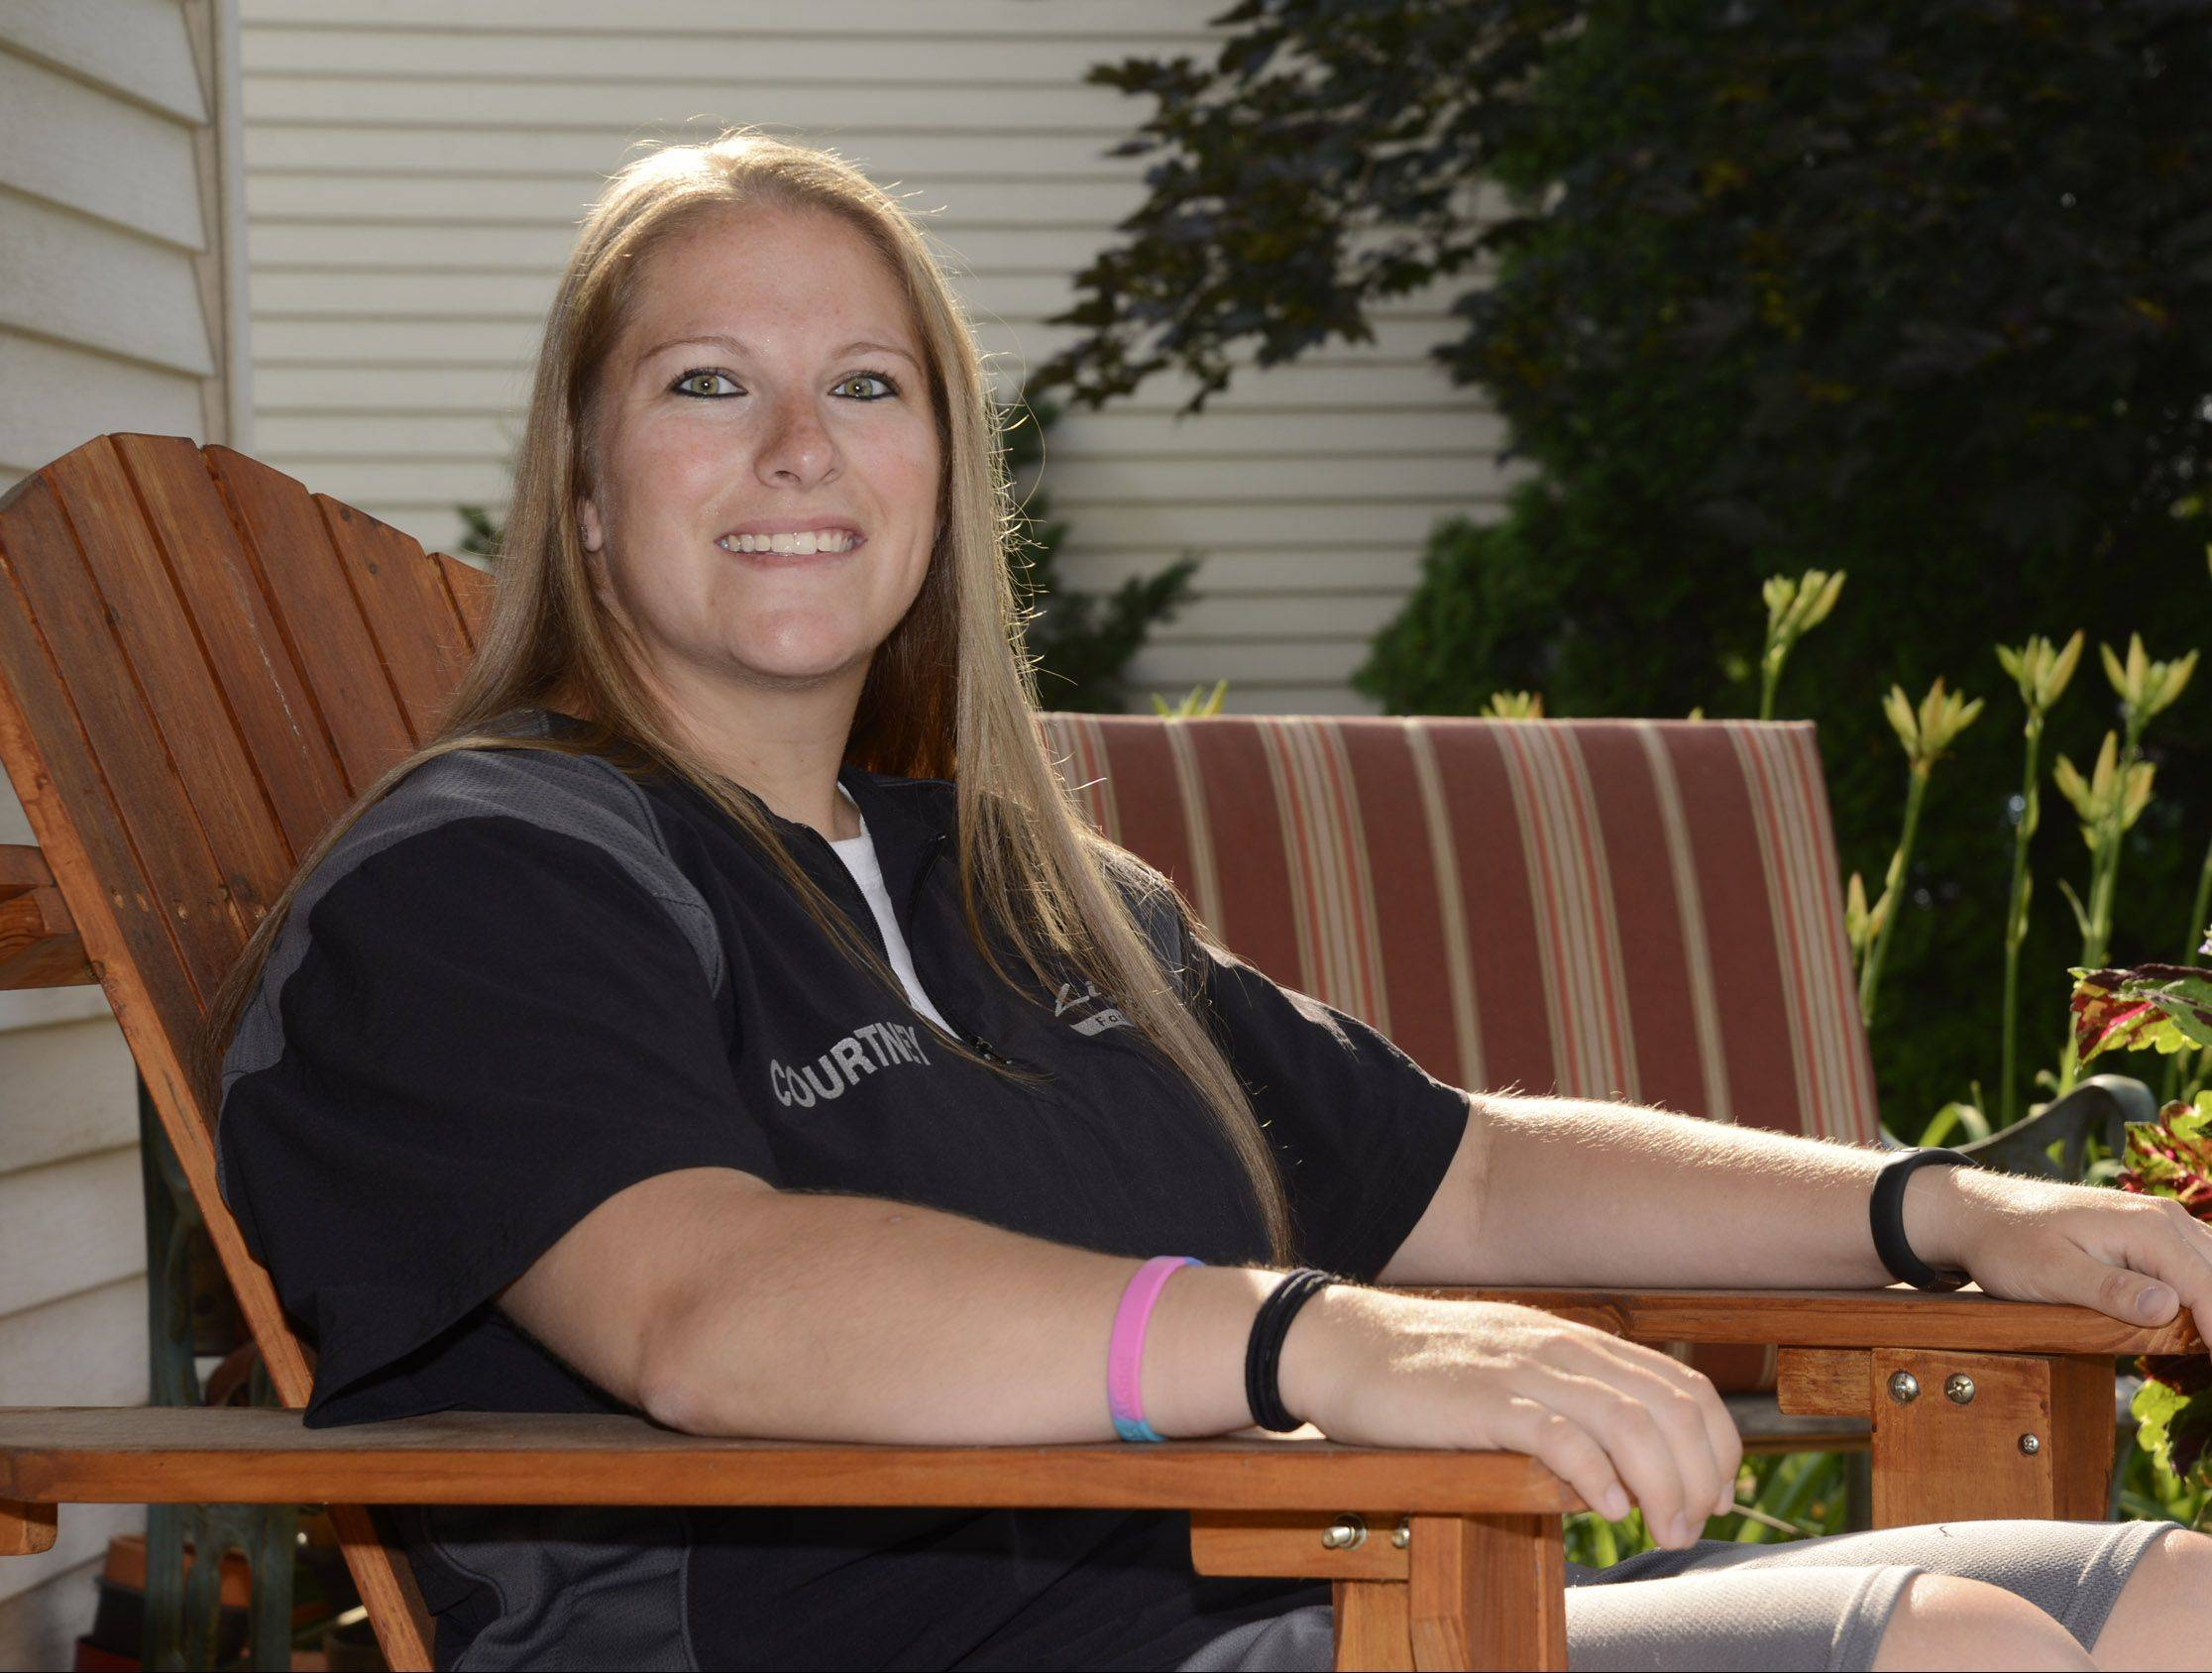 Courtney LaFerle is an Elgin native and Larkin High School graduate who was diagnosed with thyroid cancer last month. She continues to coach softball for the Northern Illinois Lightning Fastpitch Softball league. The softball community has jumped to her support to help with her medical bills as she readies for surgery.